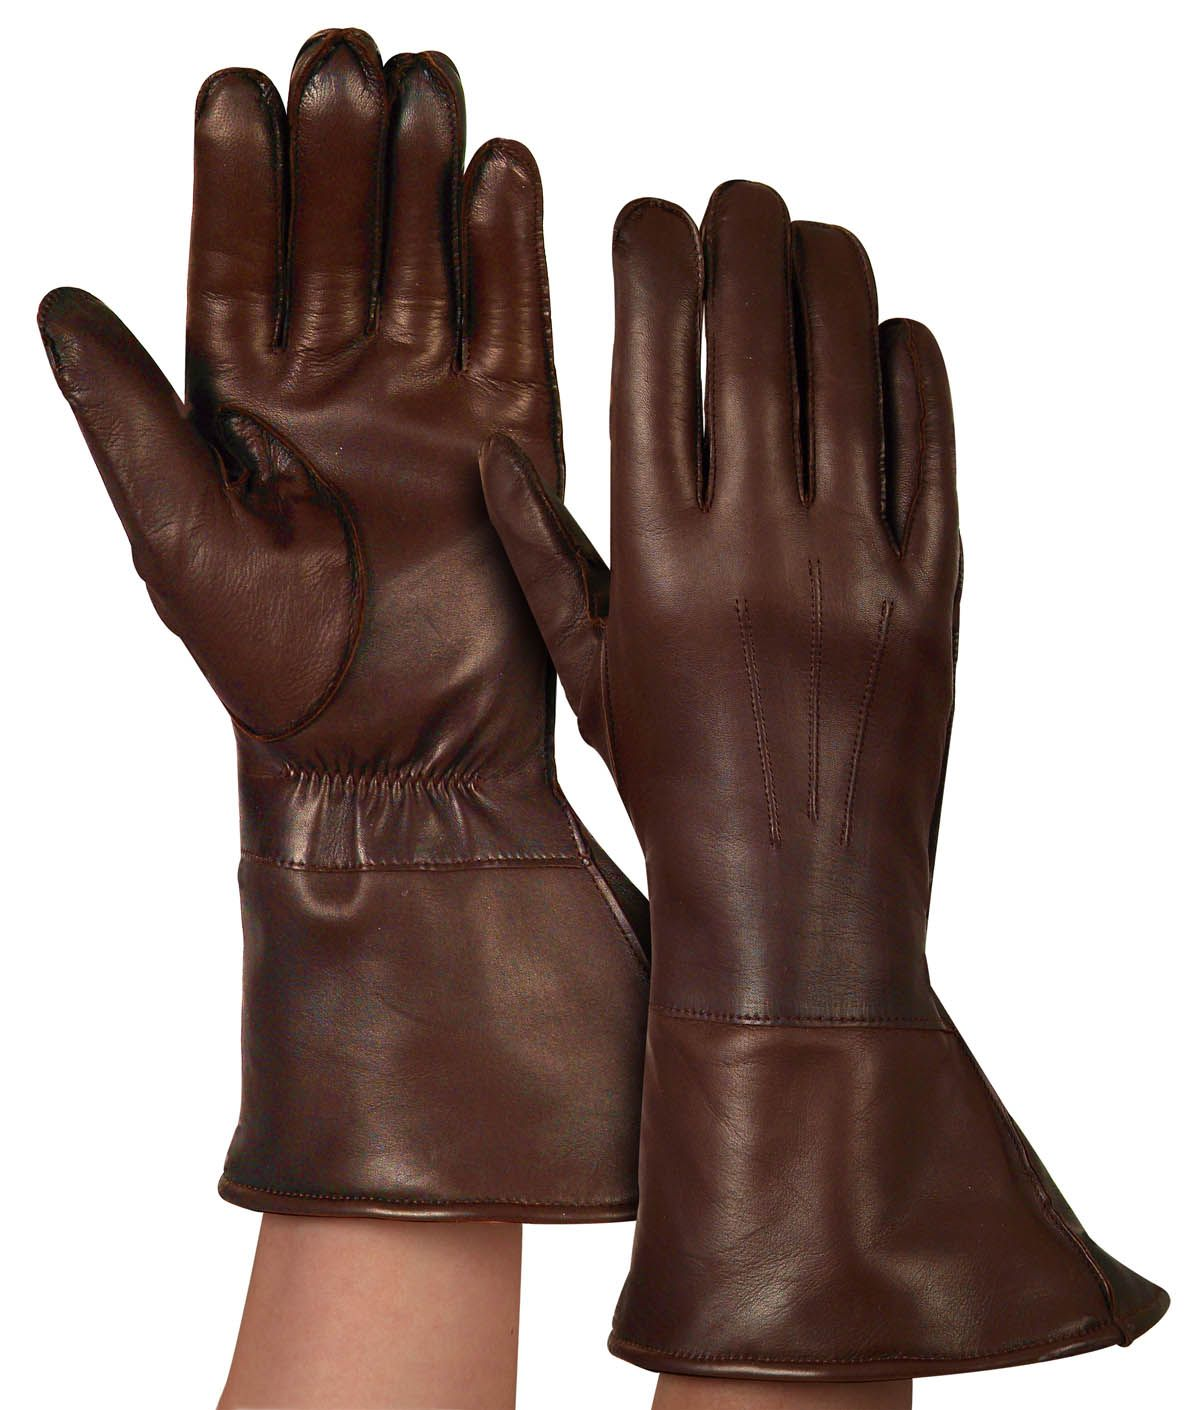 Leather gauntlet driving gloves - Chester Jefferies The Vincent Gloves Made In England Available In 39 Colours Motorcycle Glovesleather